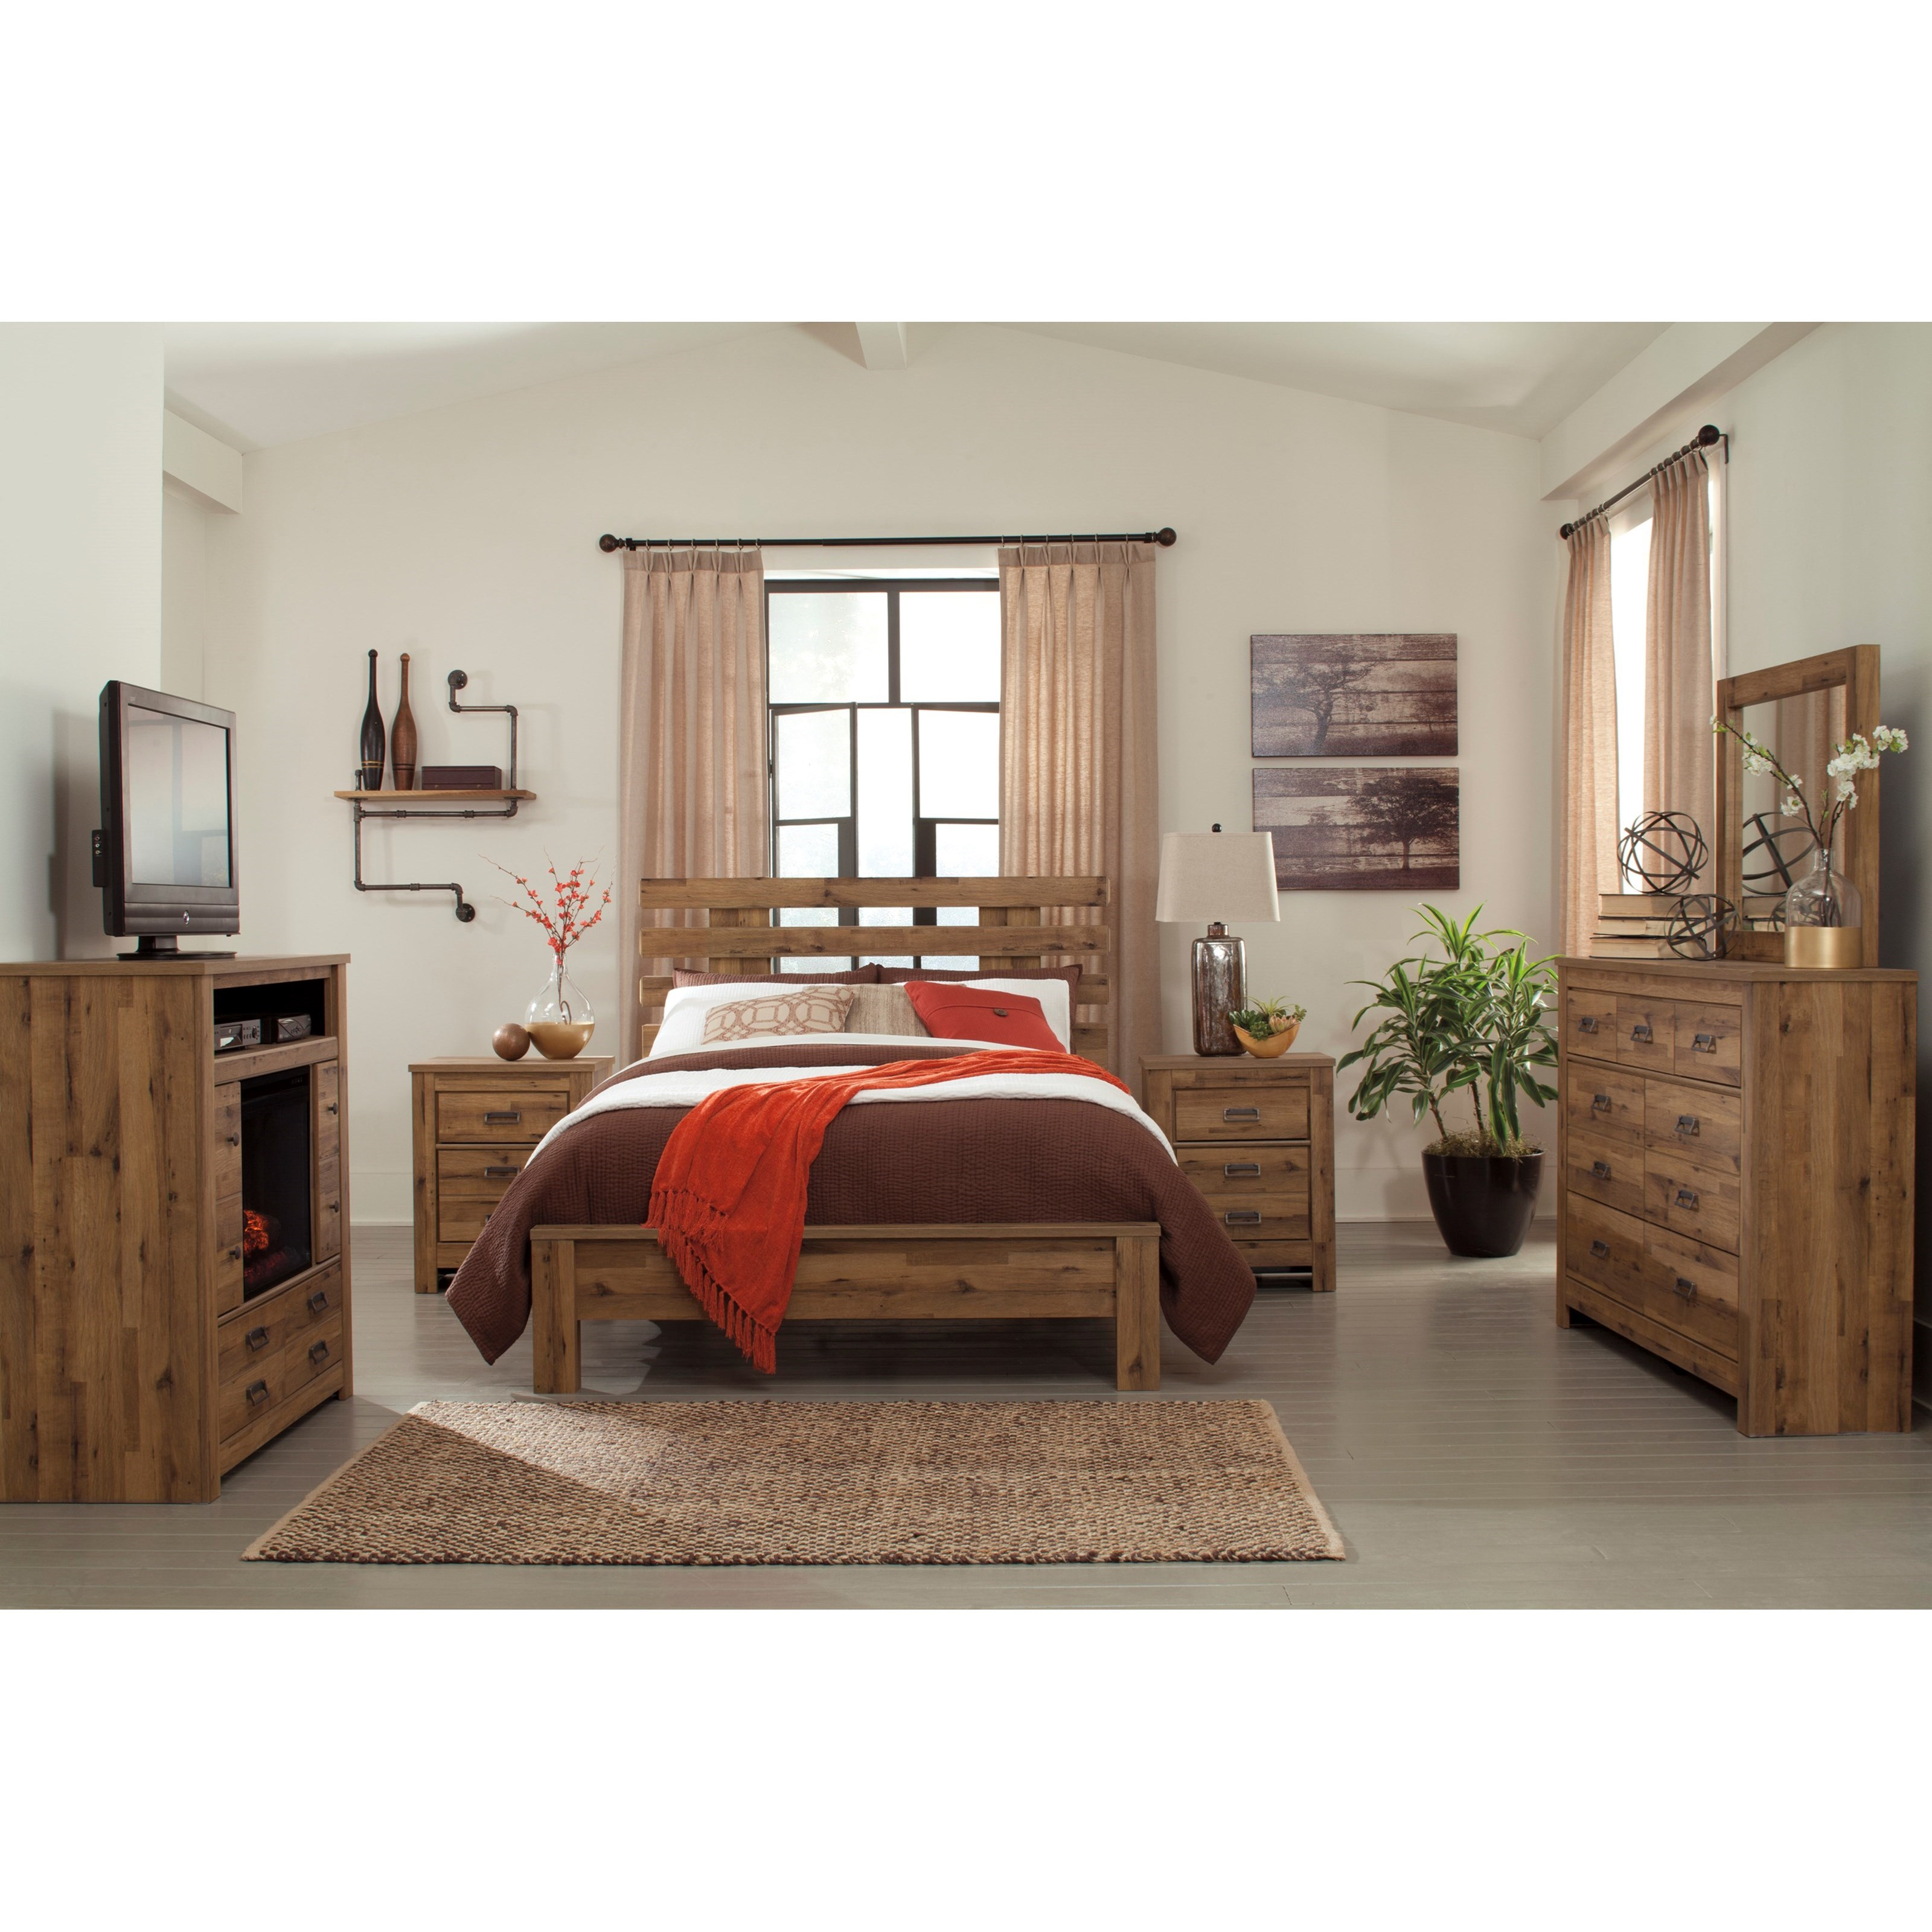 100 Old World Bedroom Furniture Inviting Old World Style Be ...